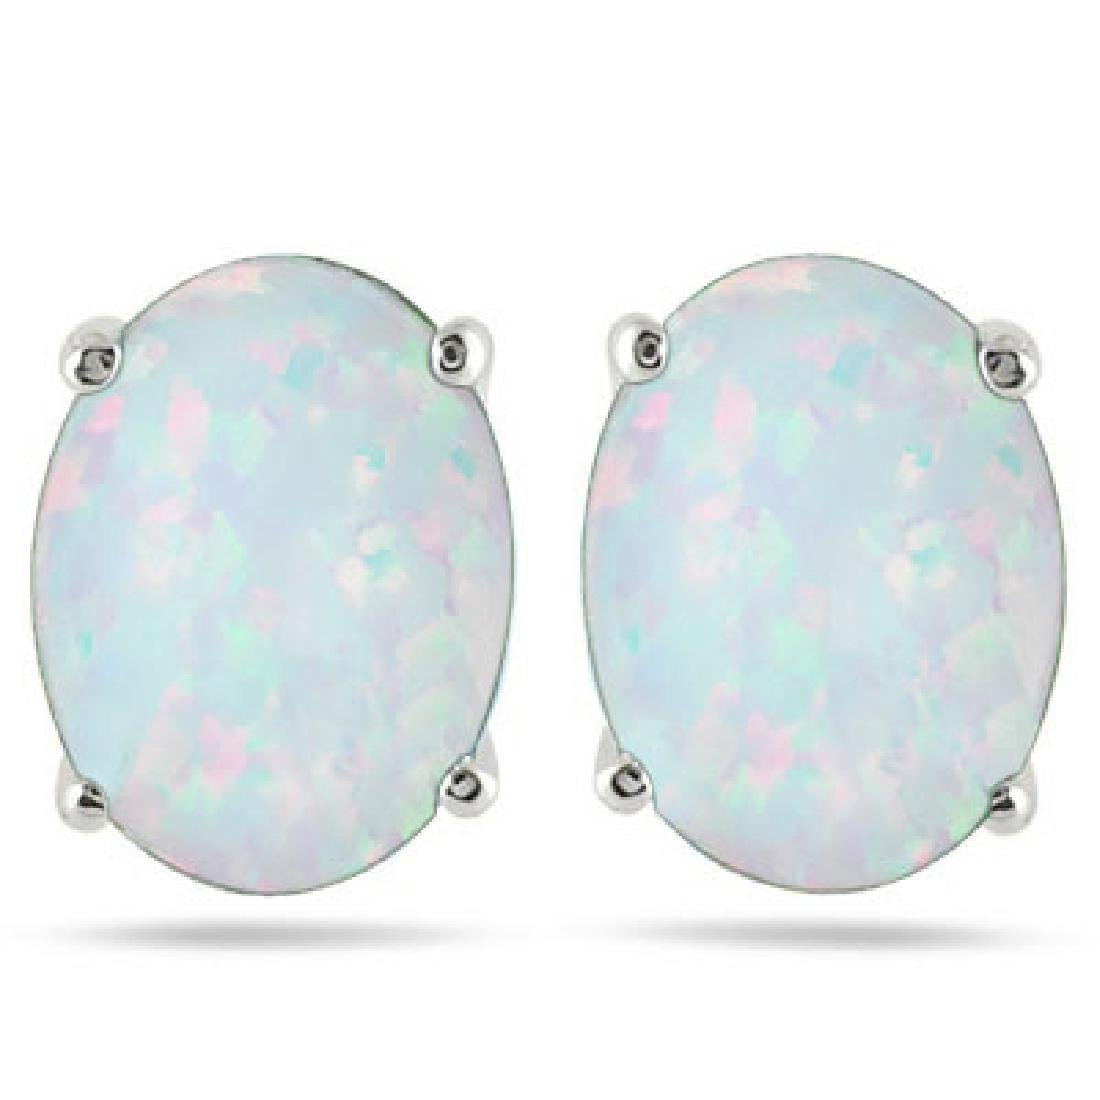 SPARKLING 1CT OVAL FIRE OPAL EARRINGS